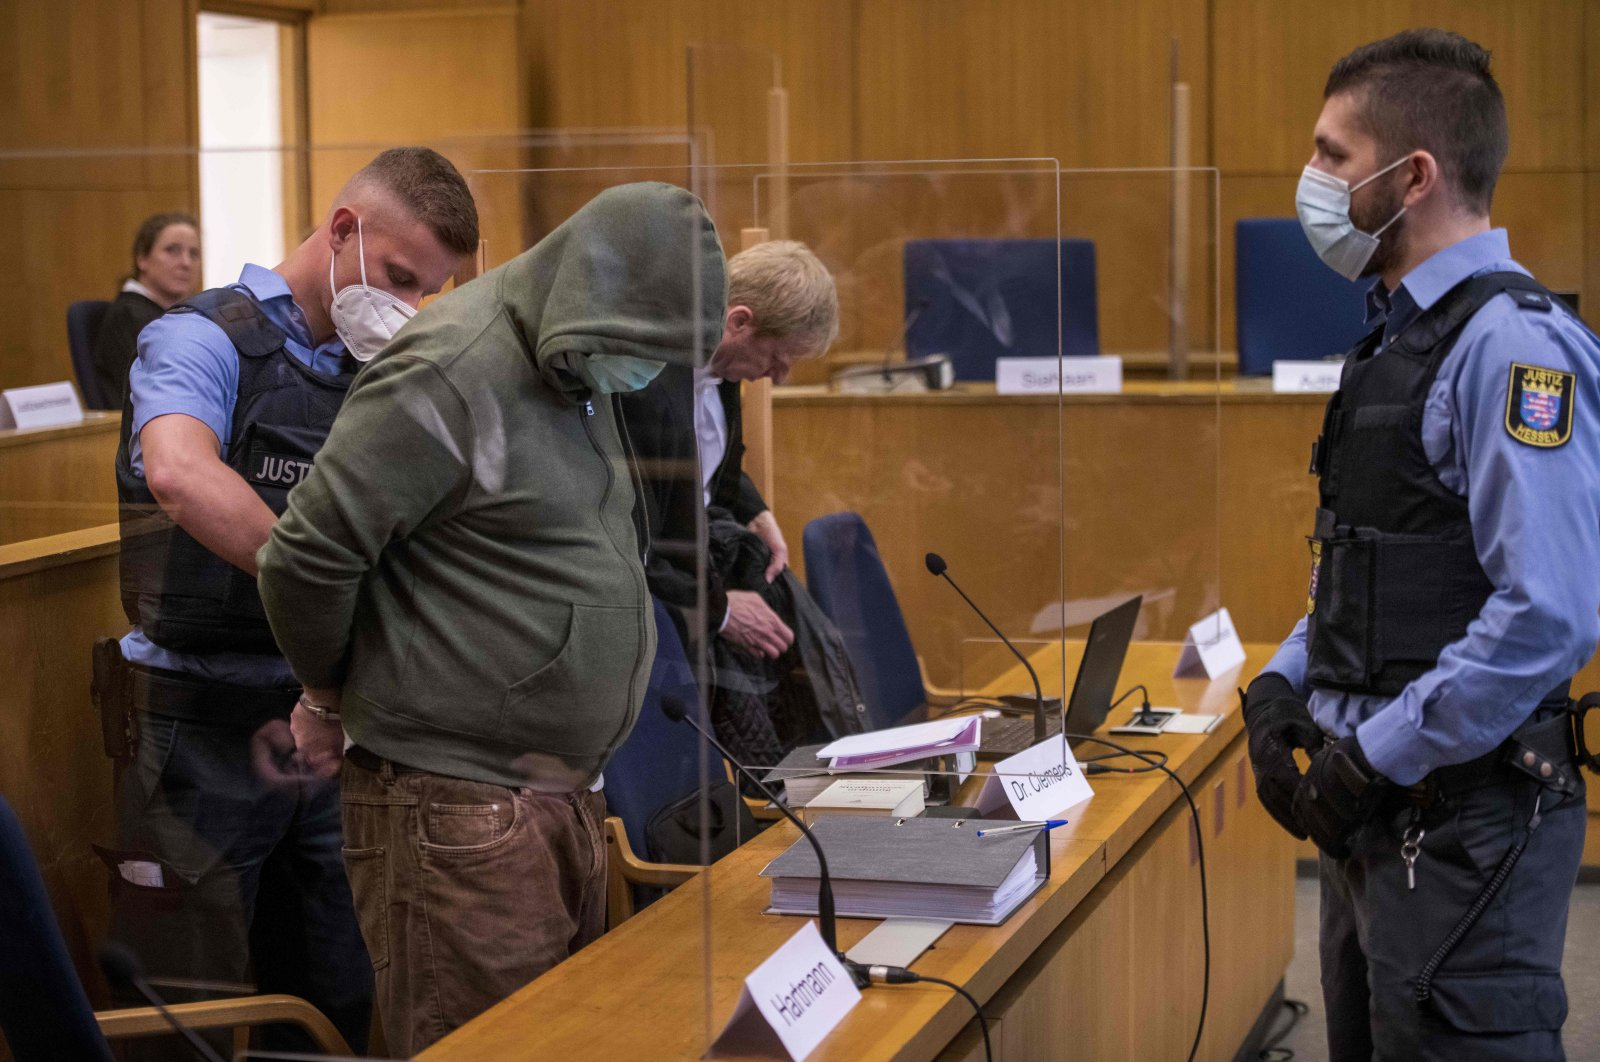 Markus H., who is accused of aiding and abetting in murdering politician Walter Luebcke, arrives for the first day of his trial at the Oberlandgericht Frankfurt courthouse on June 16, 2020. (AFP Photo)